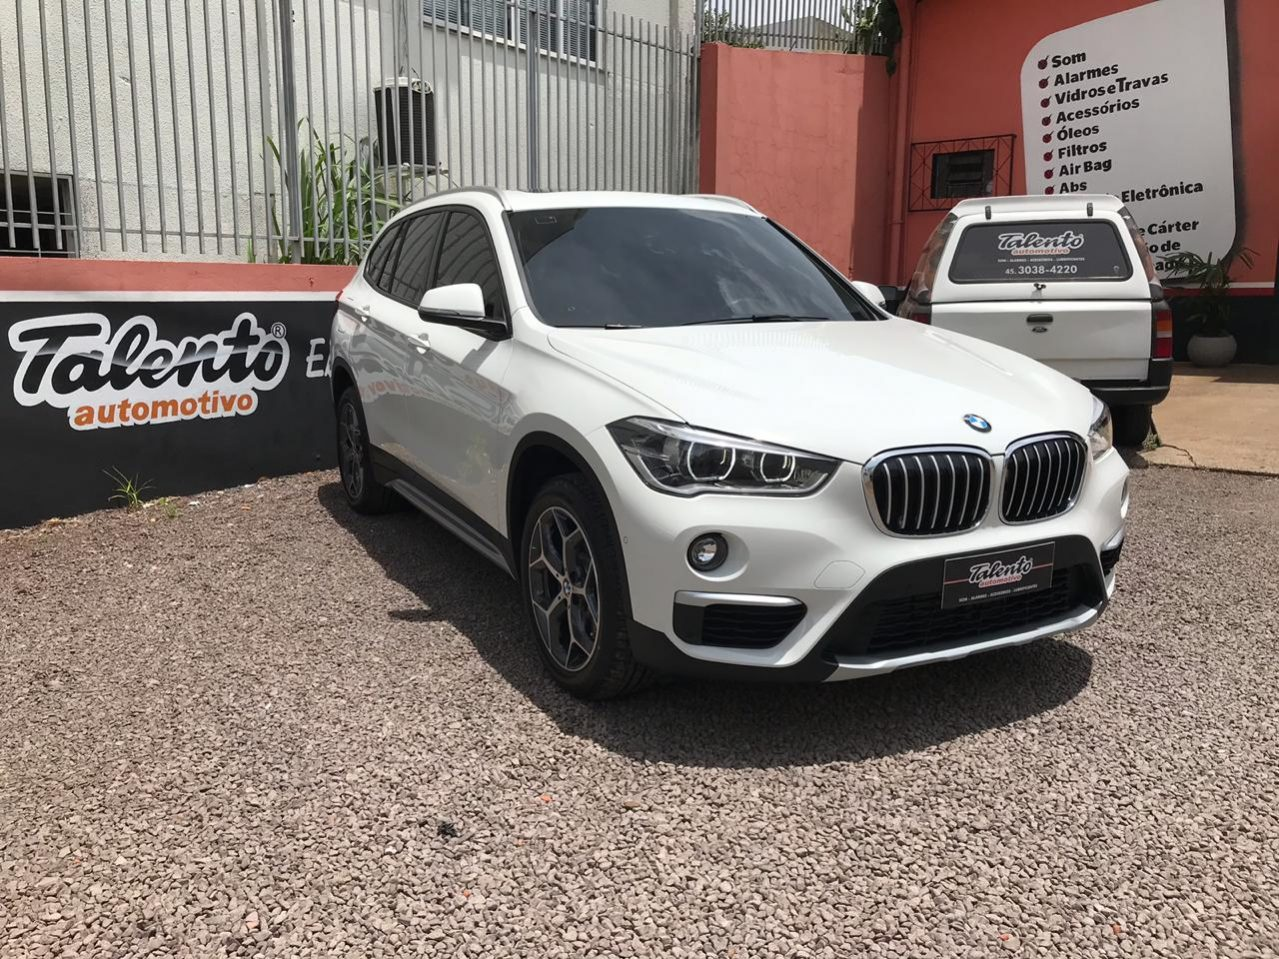 Talento-automotivo-cascavel-pr-bmw-x1-2